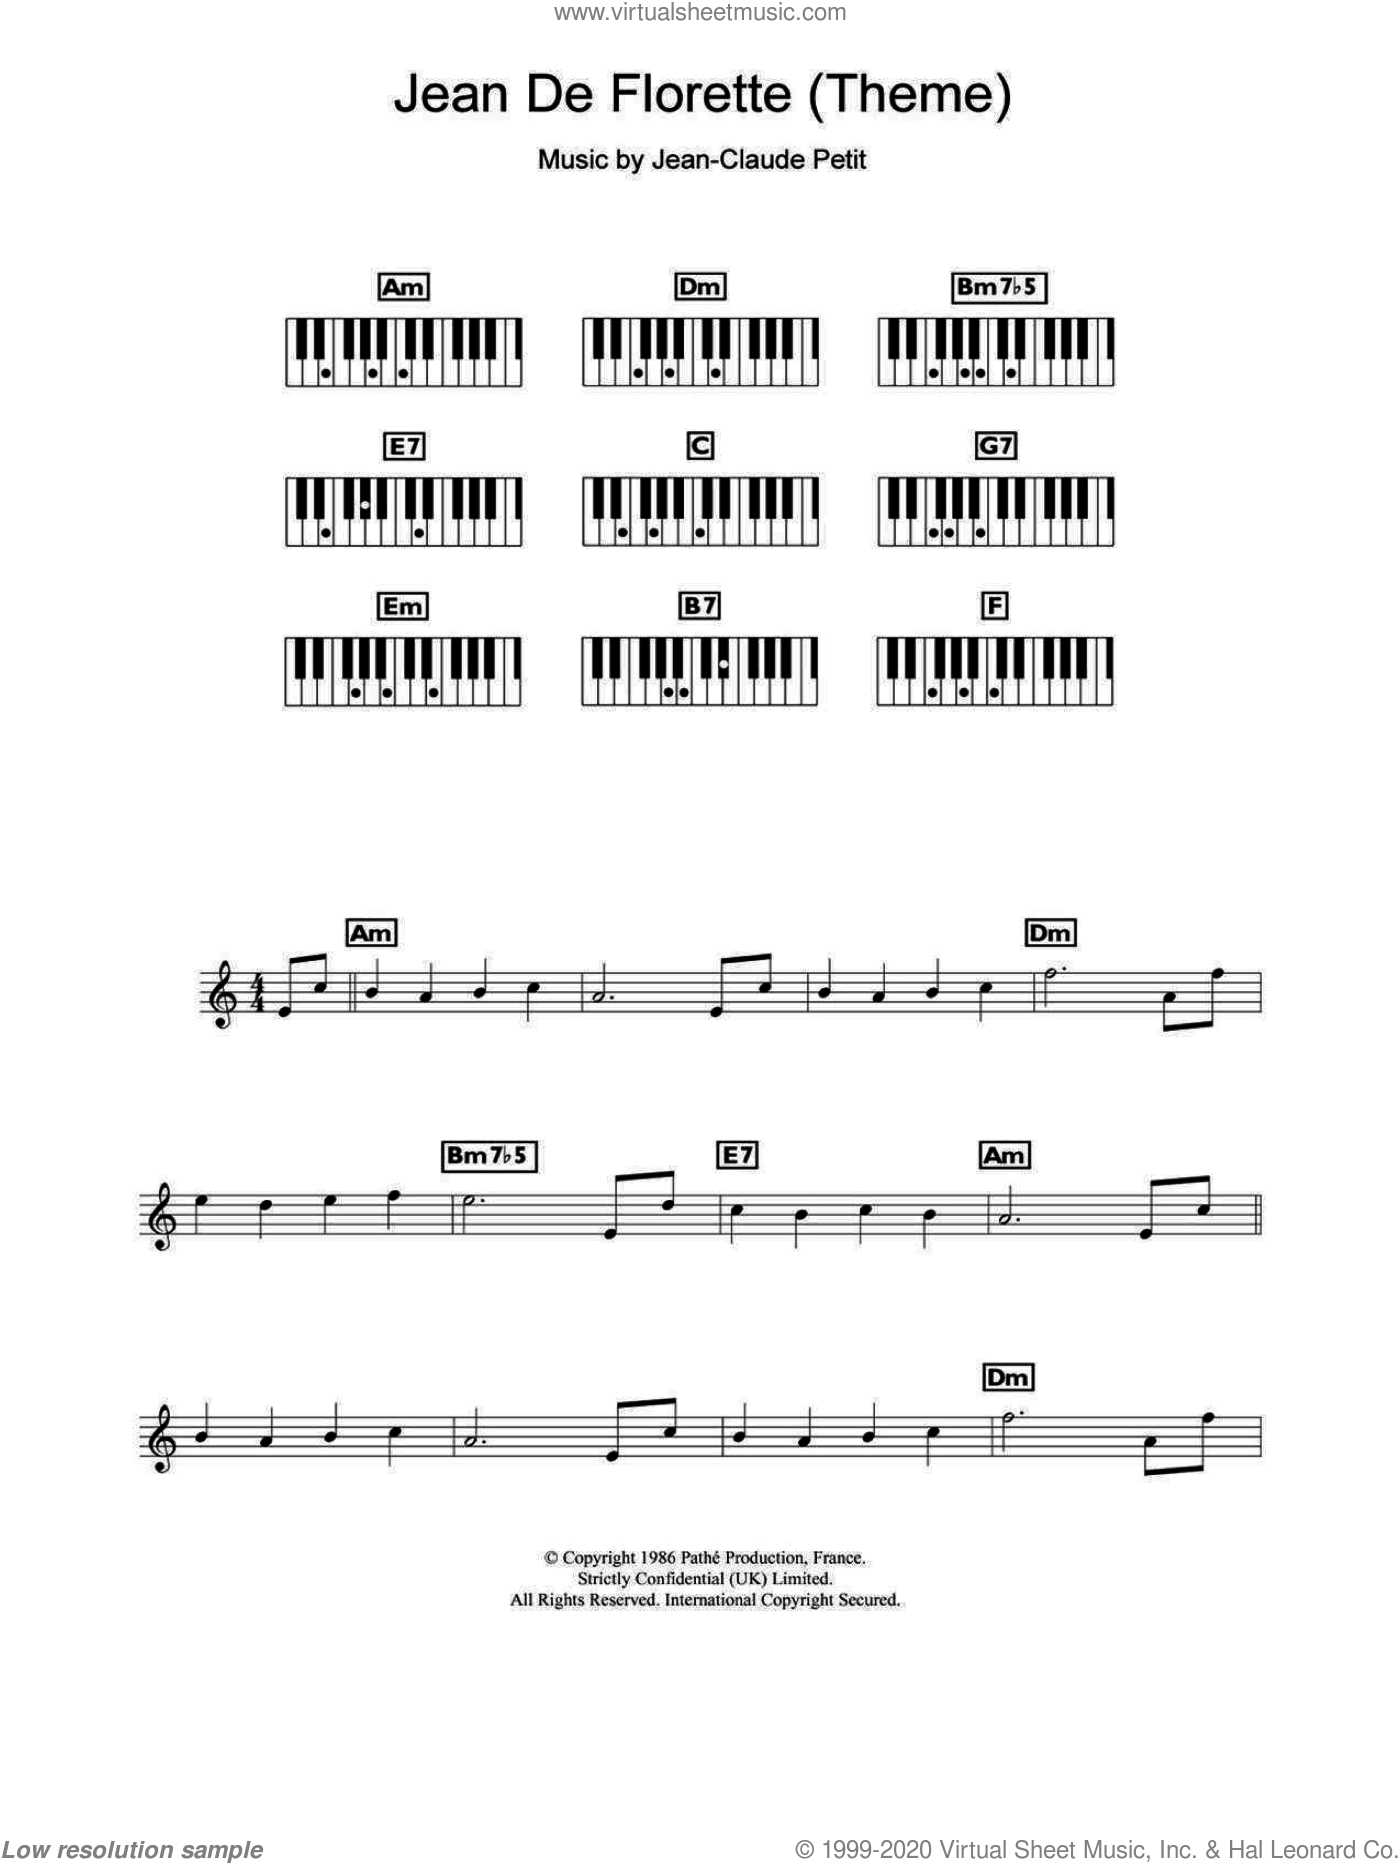 Jean de Florette (Theme) sheet music for piano solo (chords, lyrics, melody) by Jean-claude Petit